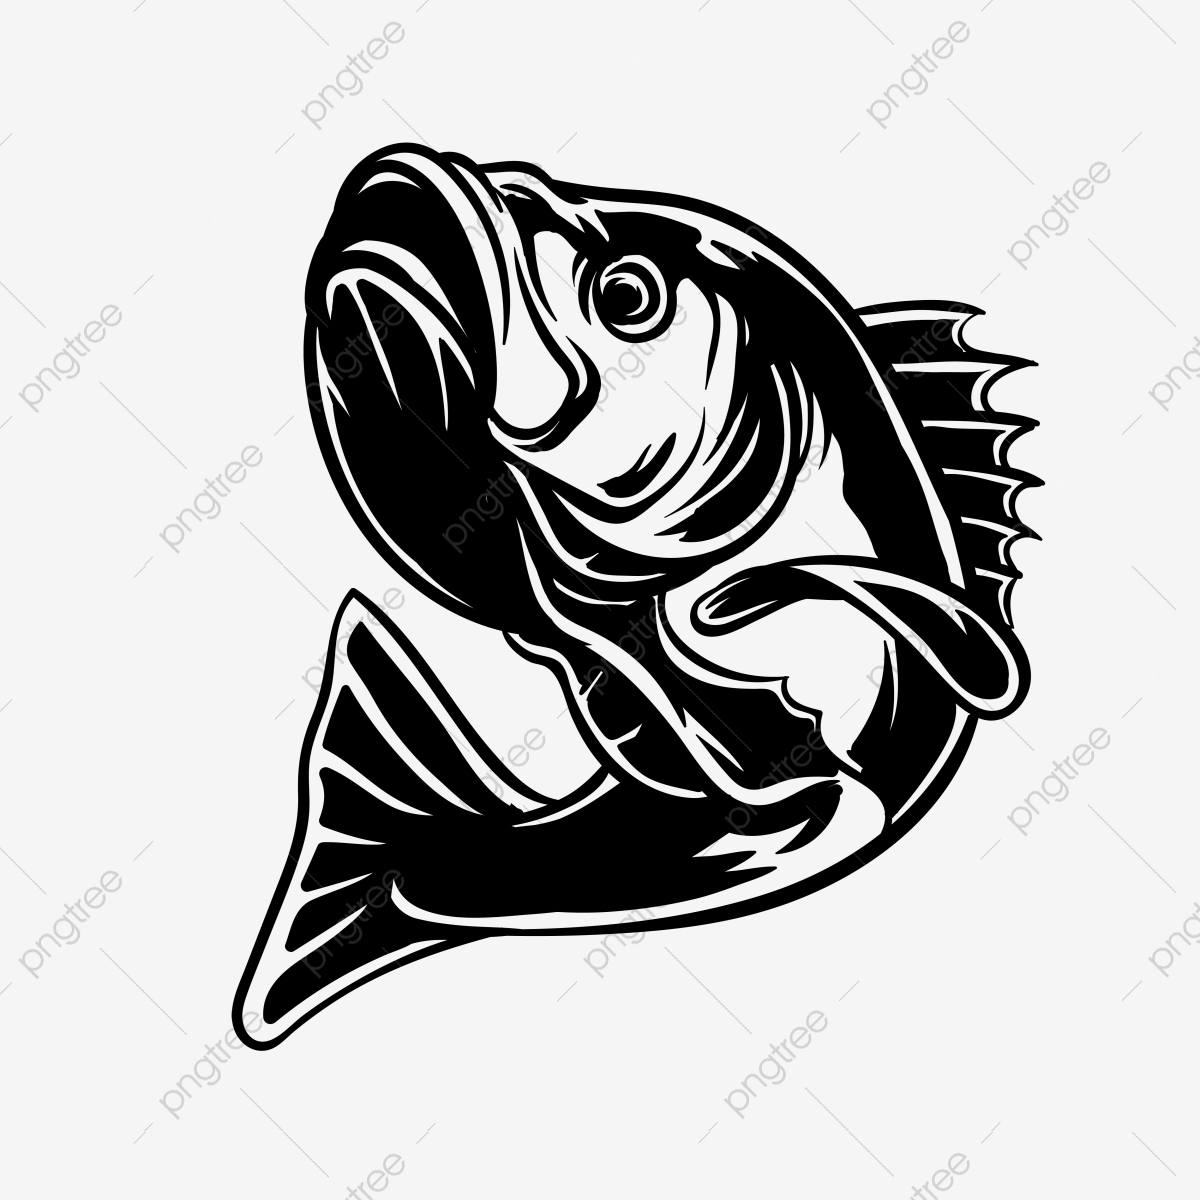 Silhouette Bass Fish Vector Illustration For Fishing Lover Bass Fish Lure Png And Vector With Transparent Background For Free Download